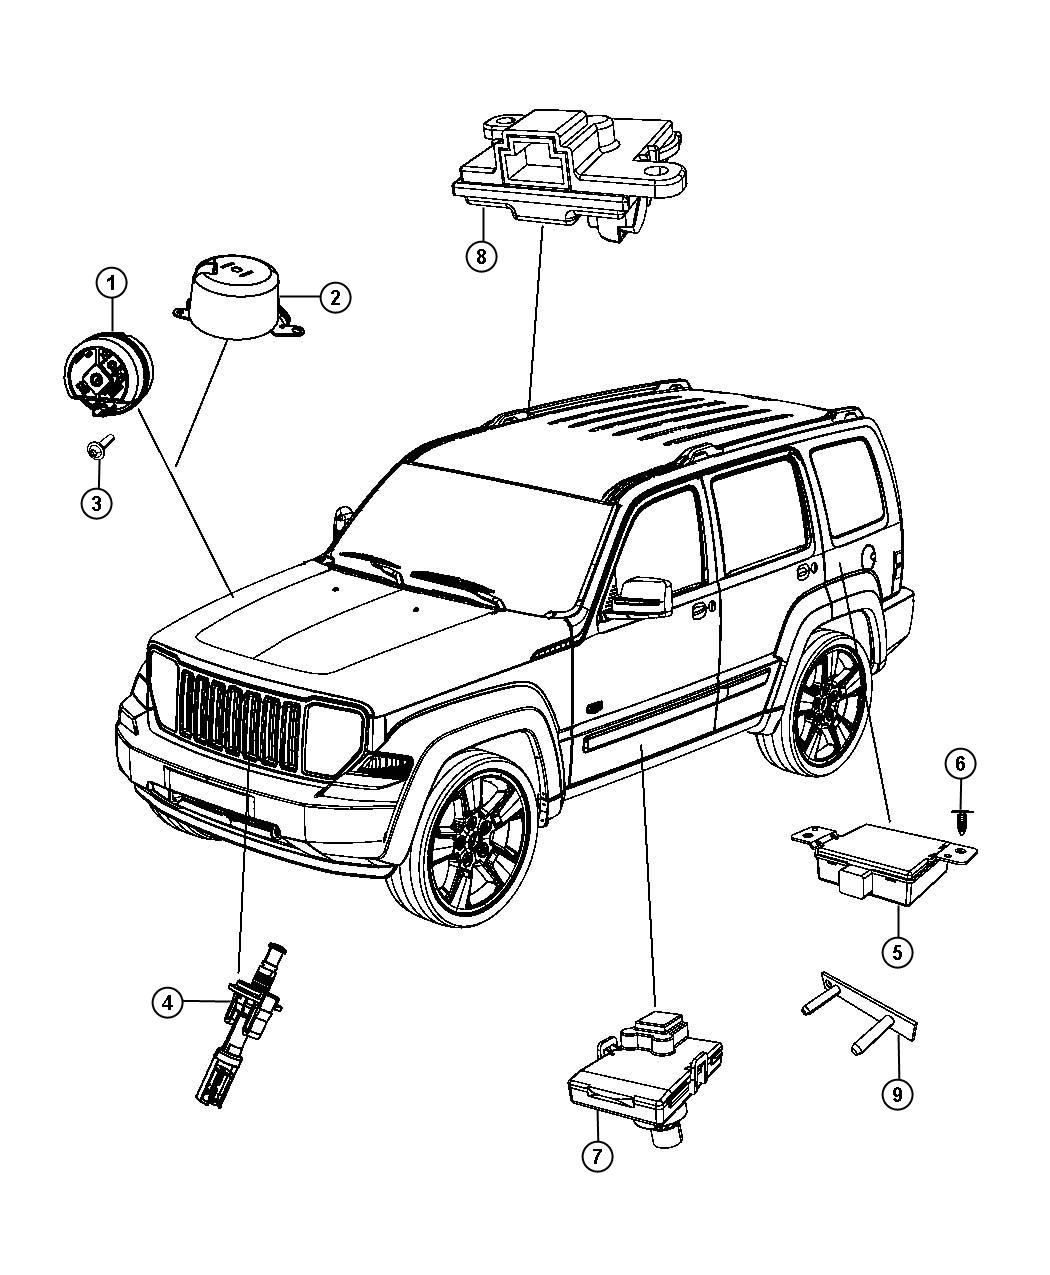 service manual  2008 jeep liberty how to disable security